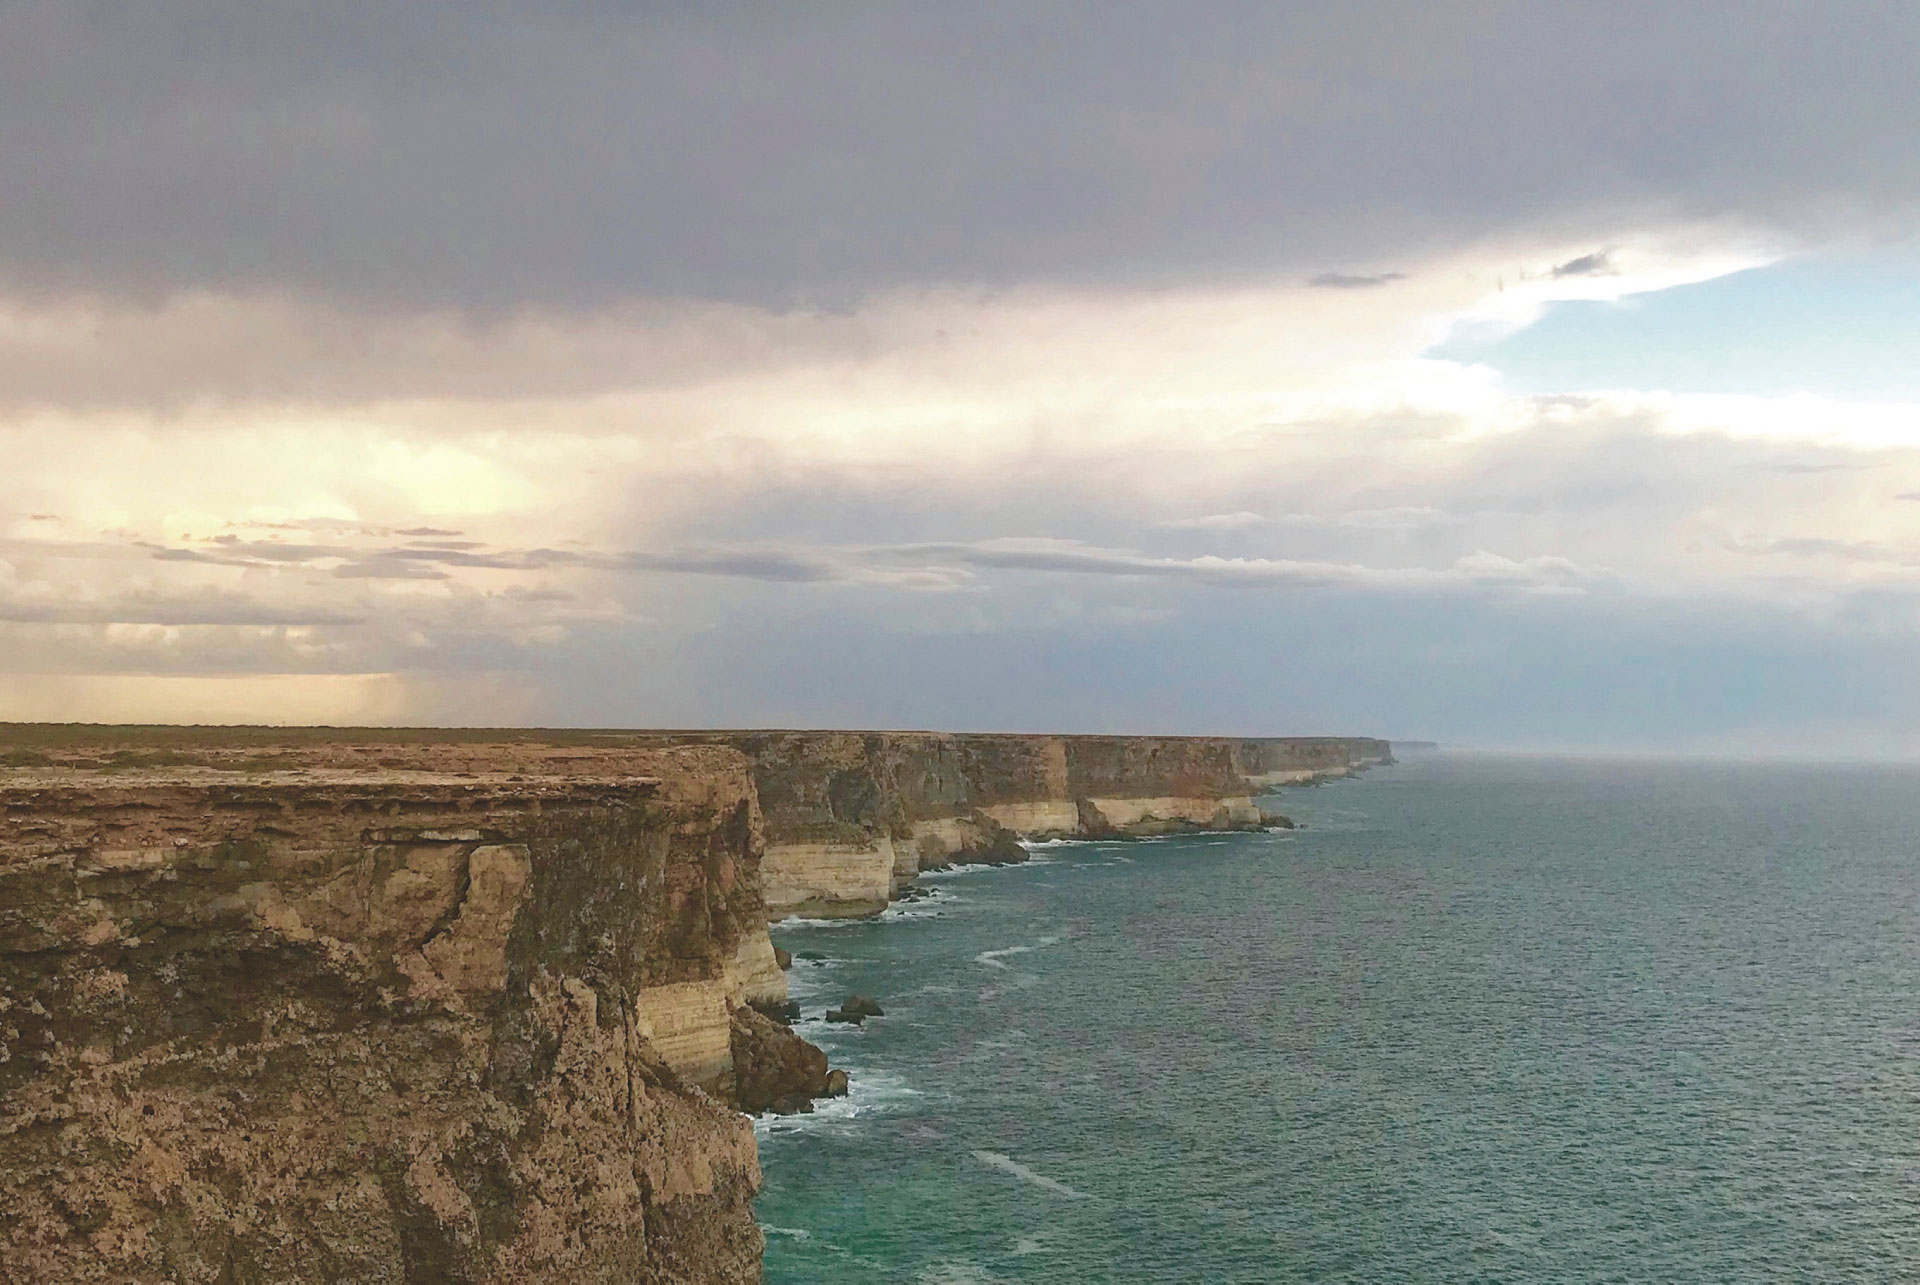 Cliffs at Head of Bight, Nullarbor Ebene, Himmel, Sonnenlicht, Meer